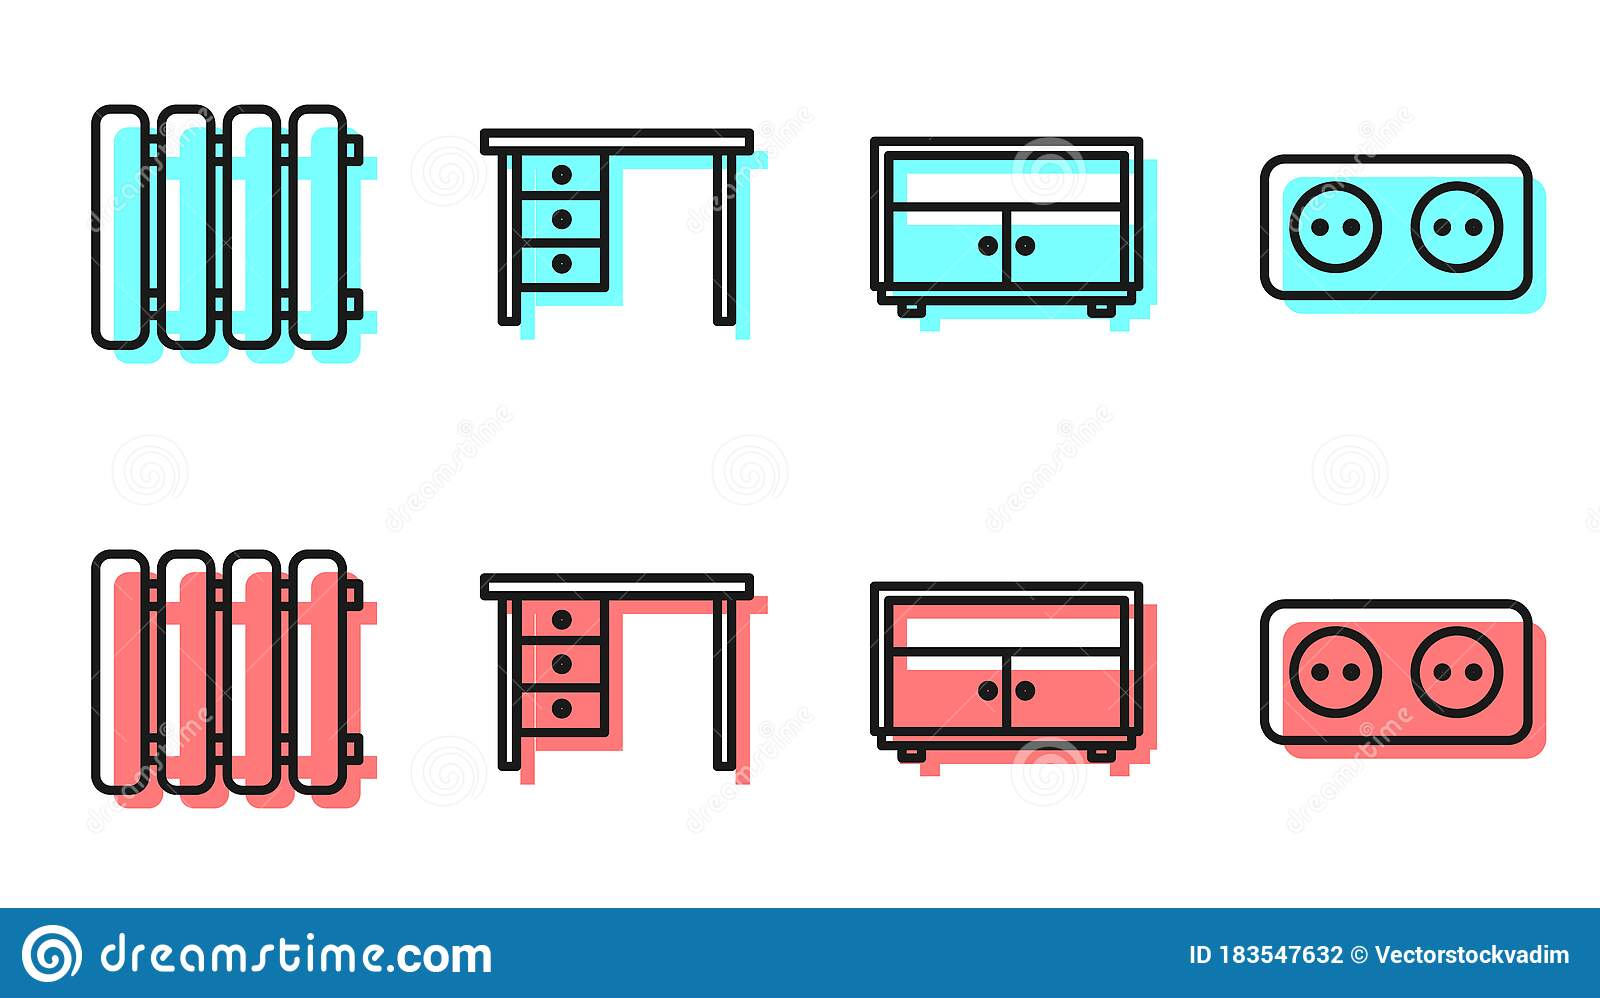 Set Line Chest Of Drawers Heating Radiator Office Desk And Electrical Outlet Icon Stock Vector Illustration Of Office Furniture 183547632